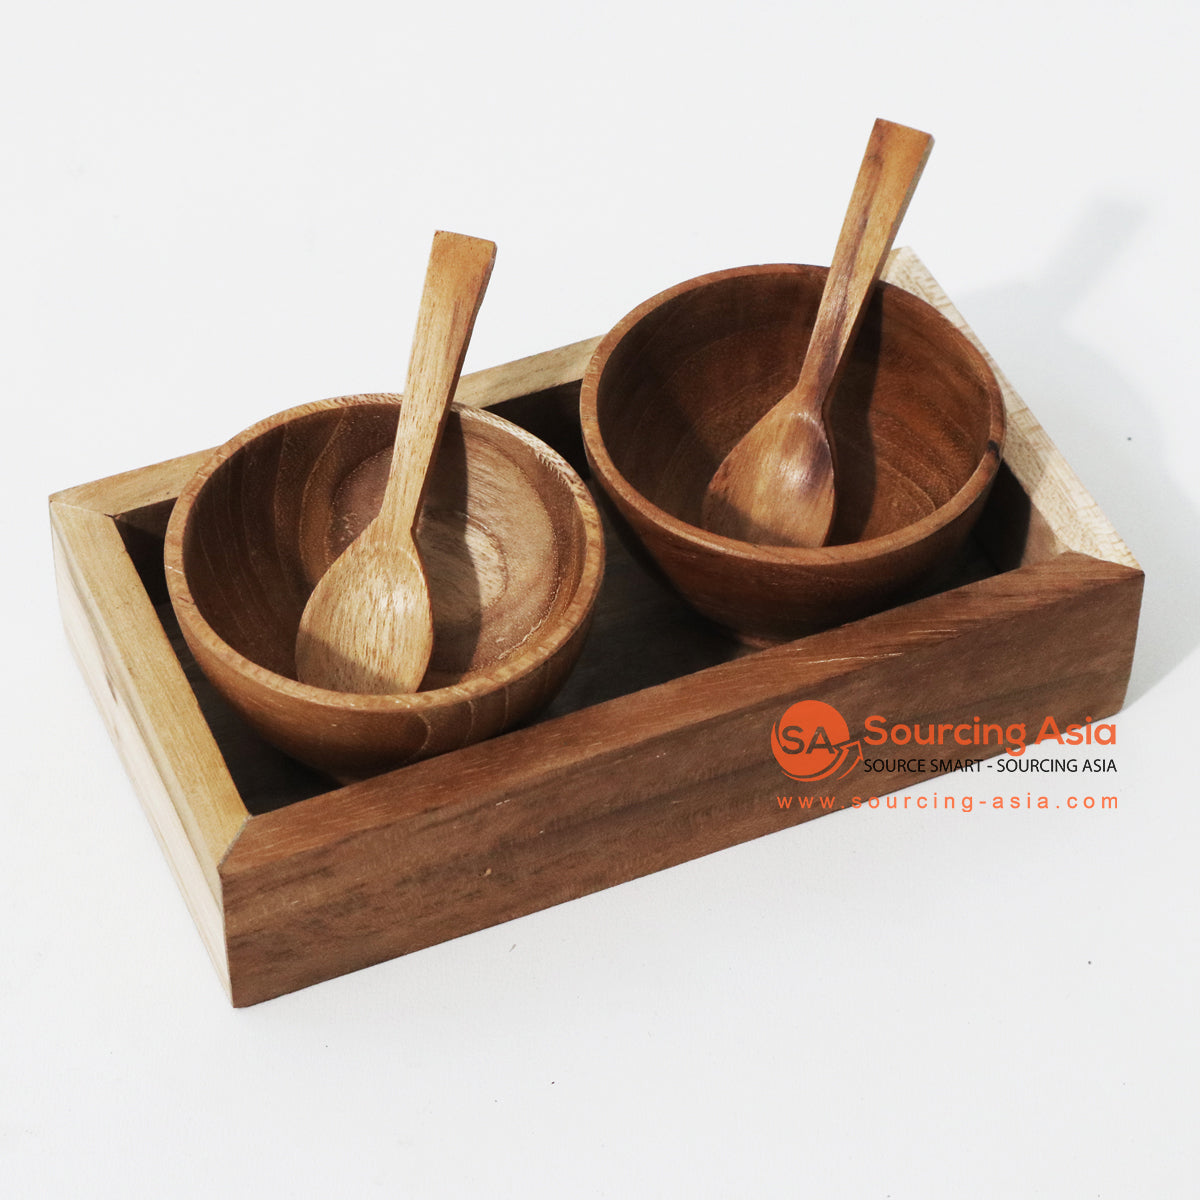 MSB013 SET OF 2 TEAK WOOD CONDIMENTS SET AND TRAY